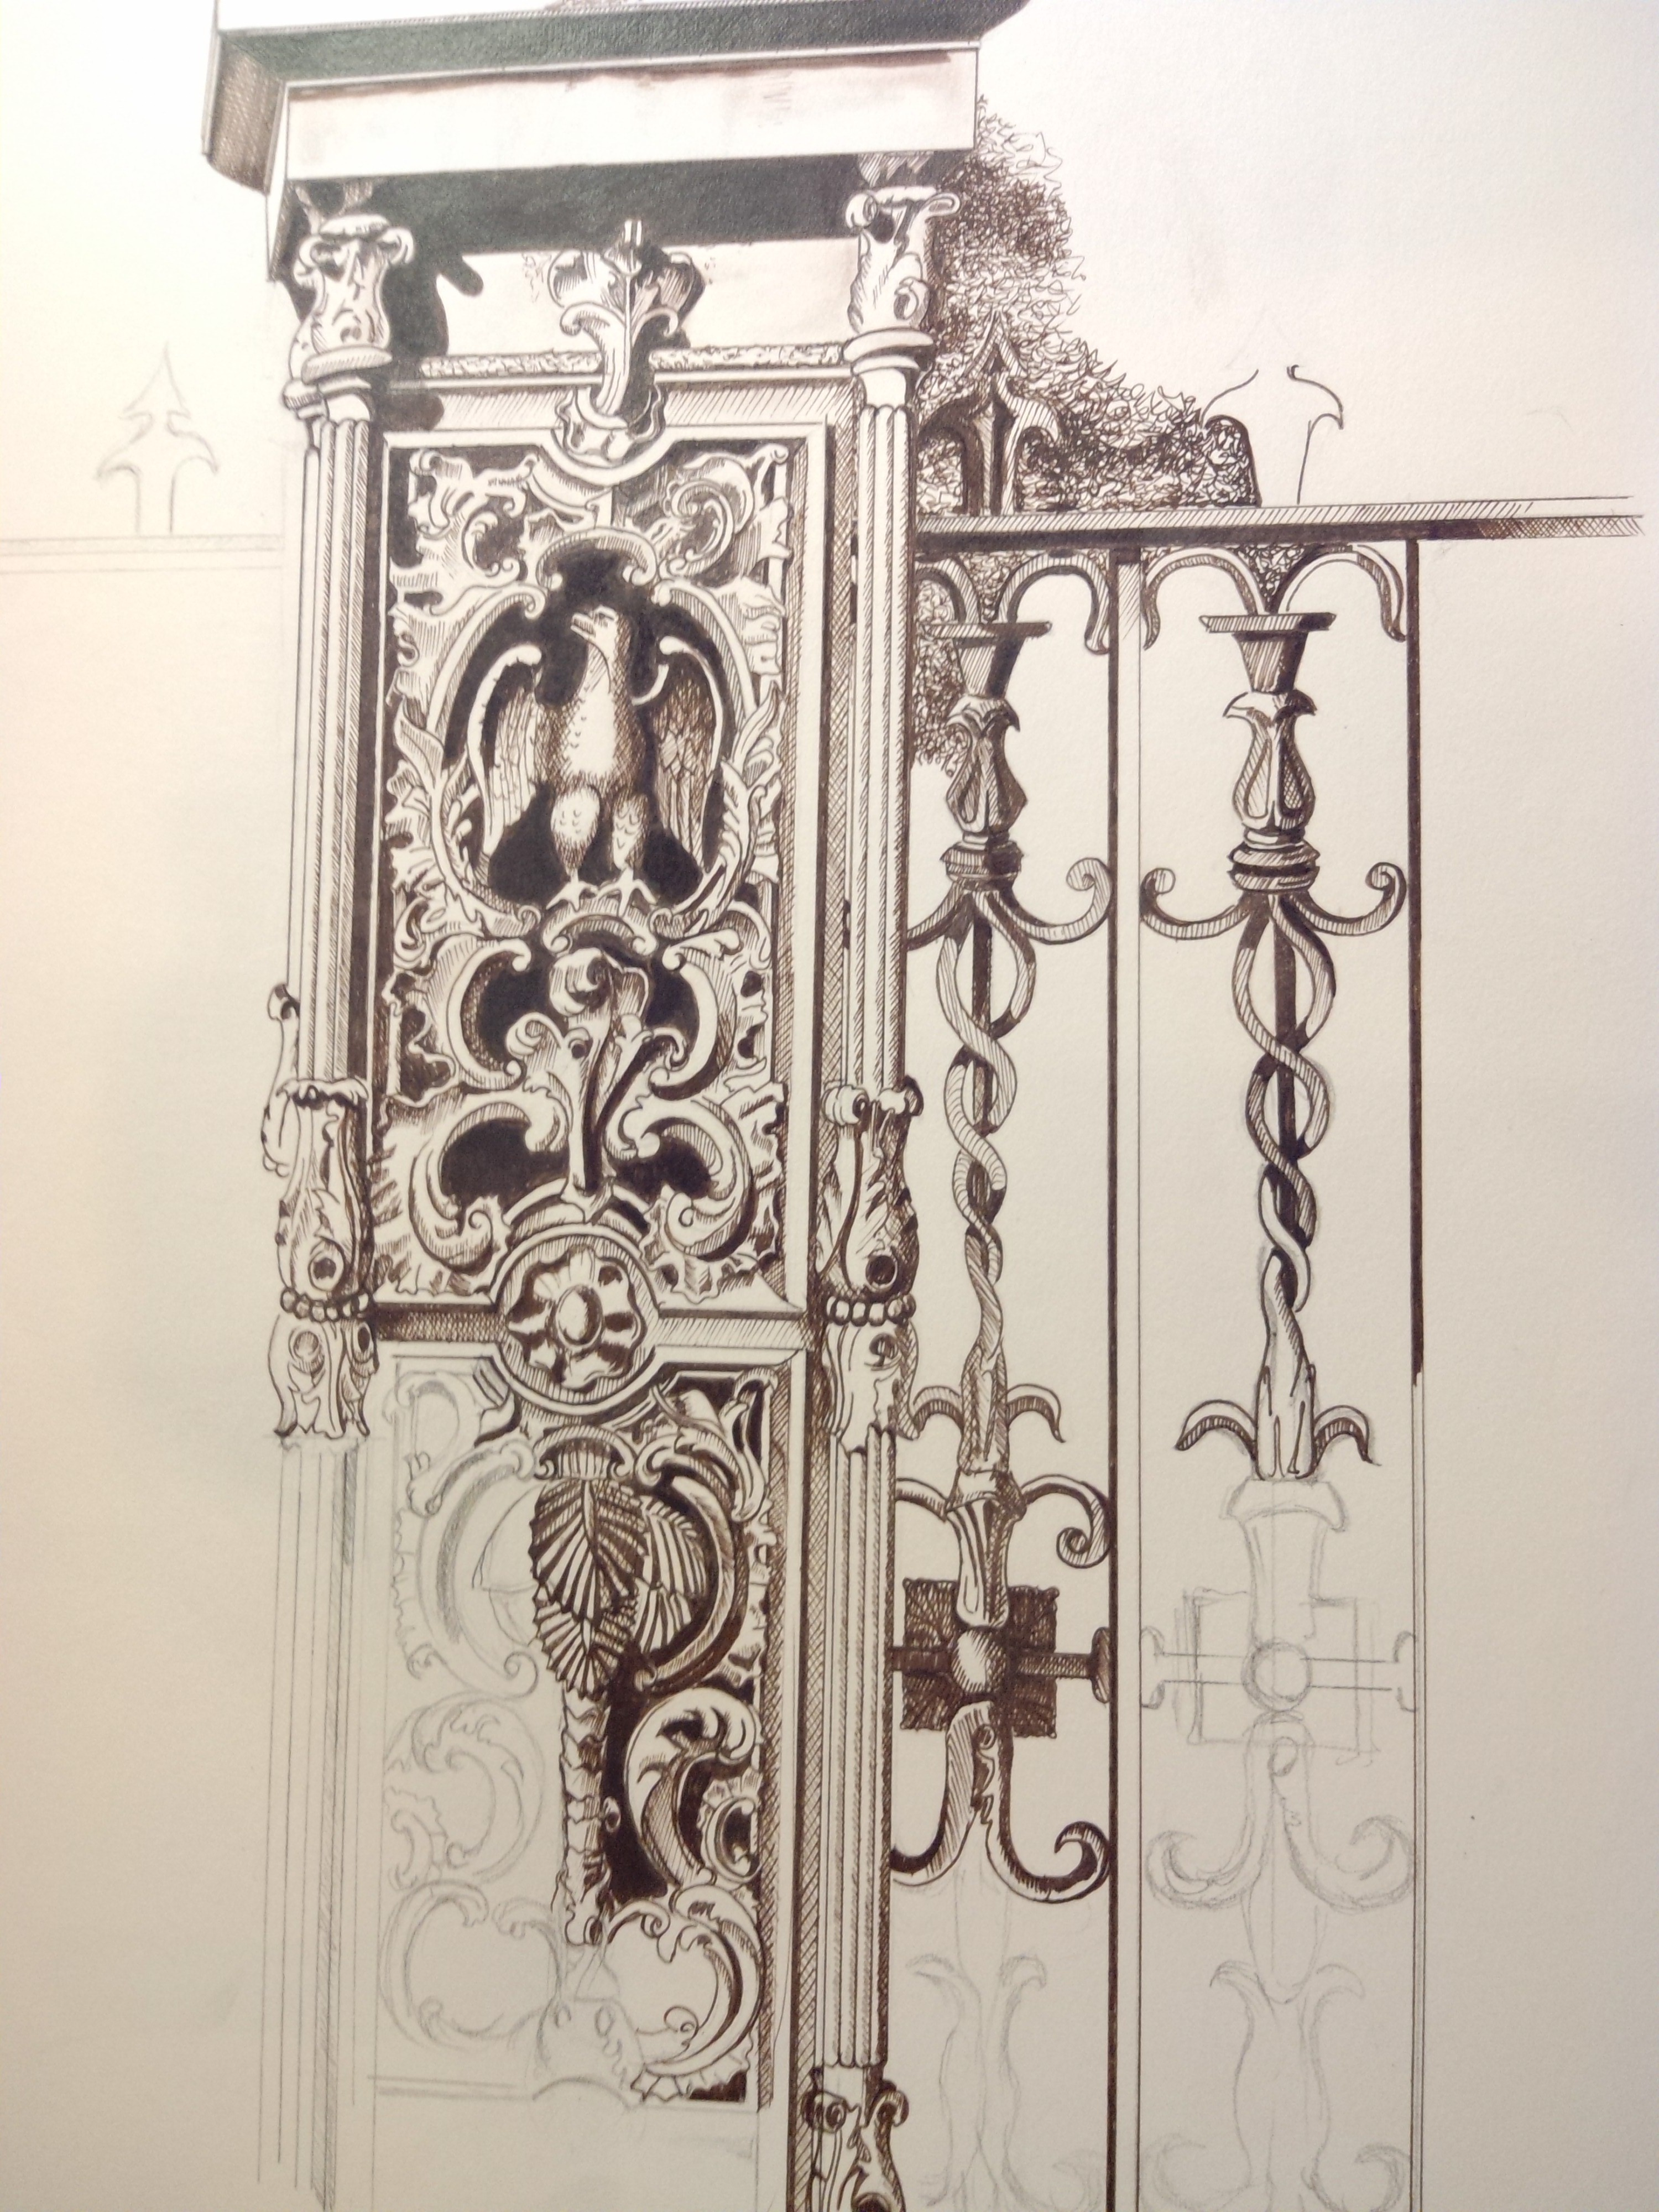 Sketch of wrought iron gate by galarzagc on deviantart